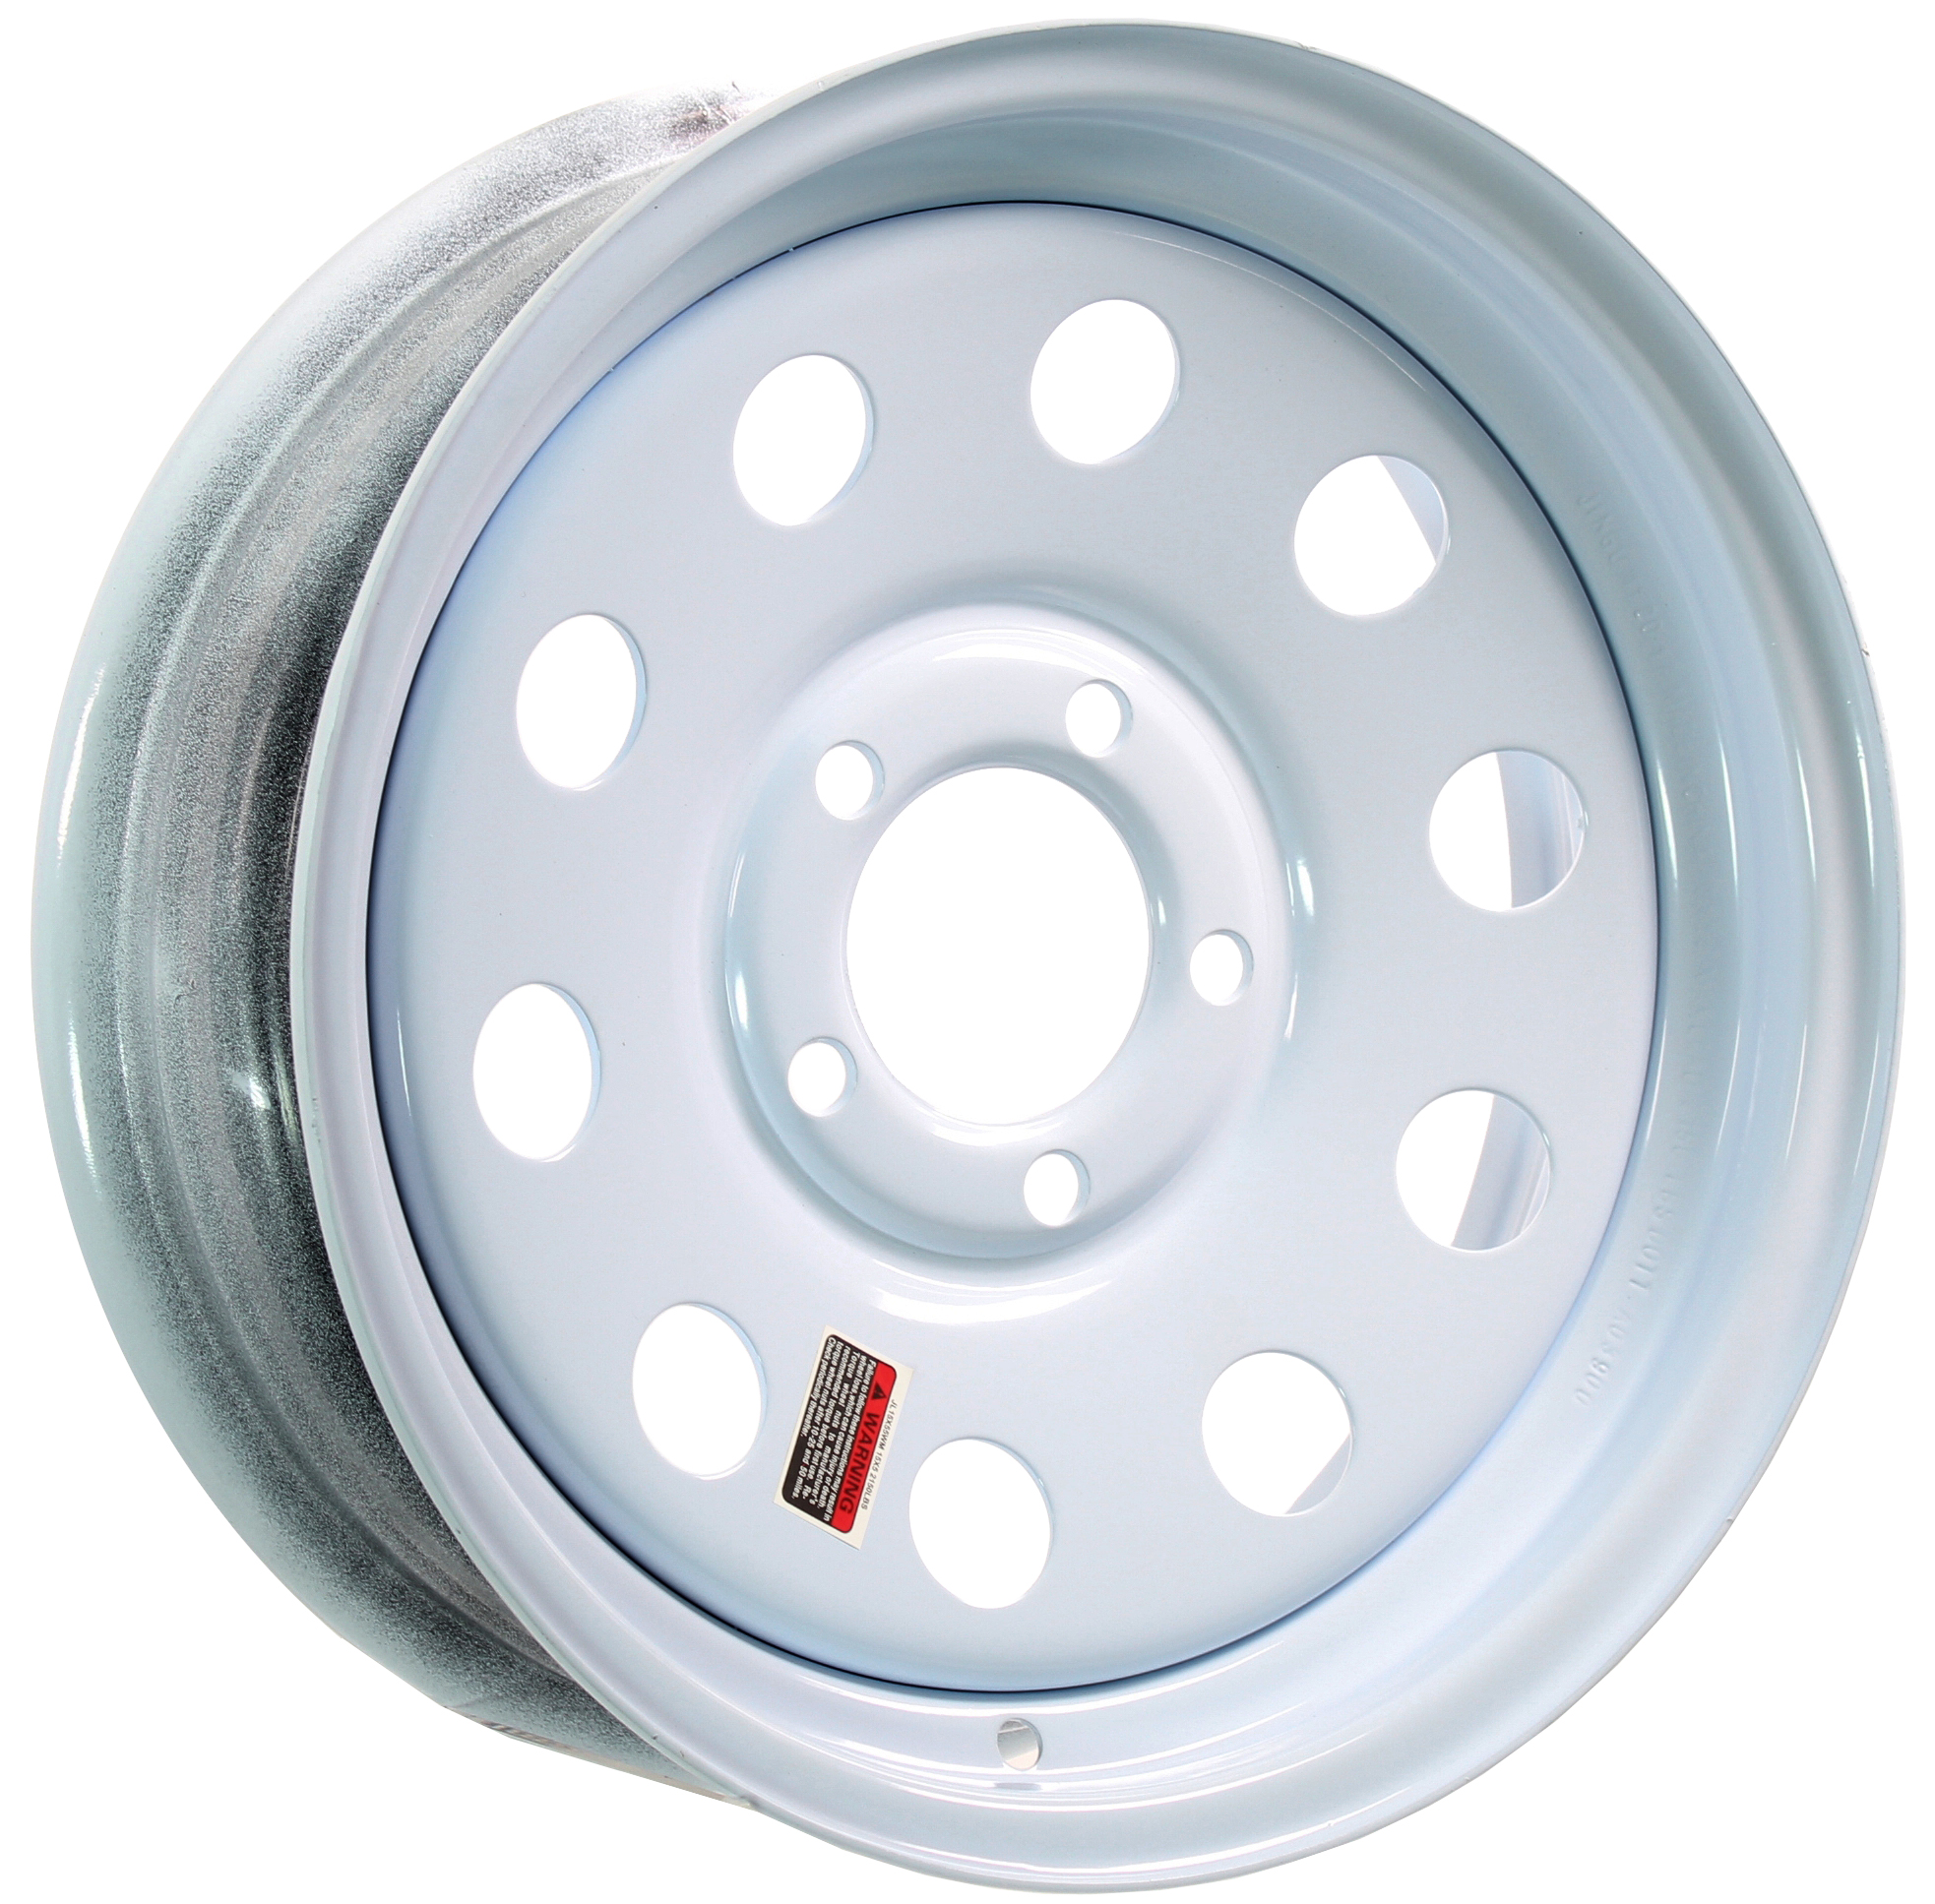 15x5 5-4.5 White Mod Steel Trailer Wheel Image